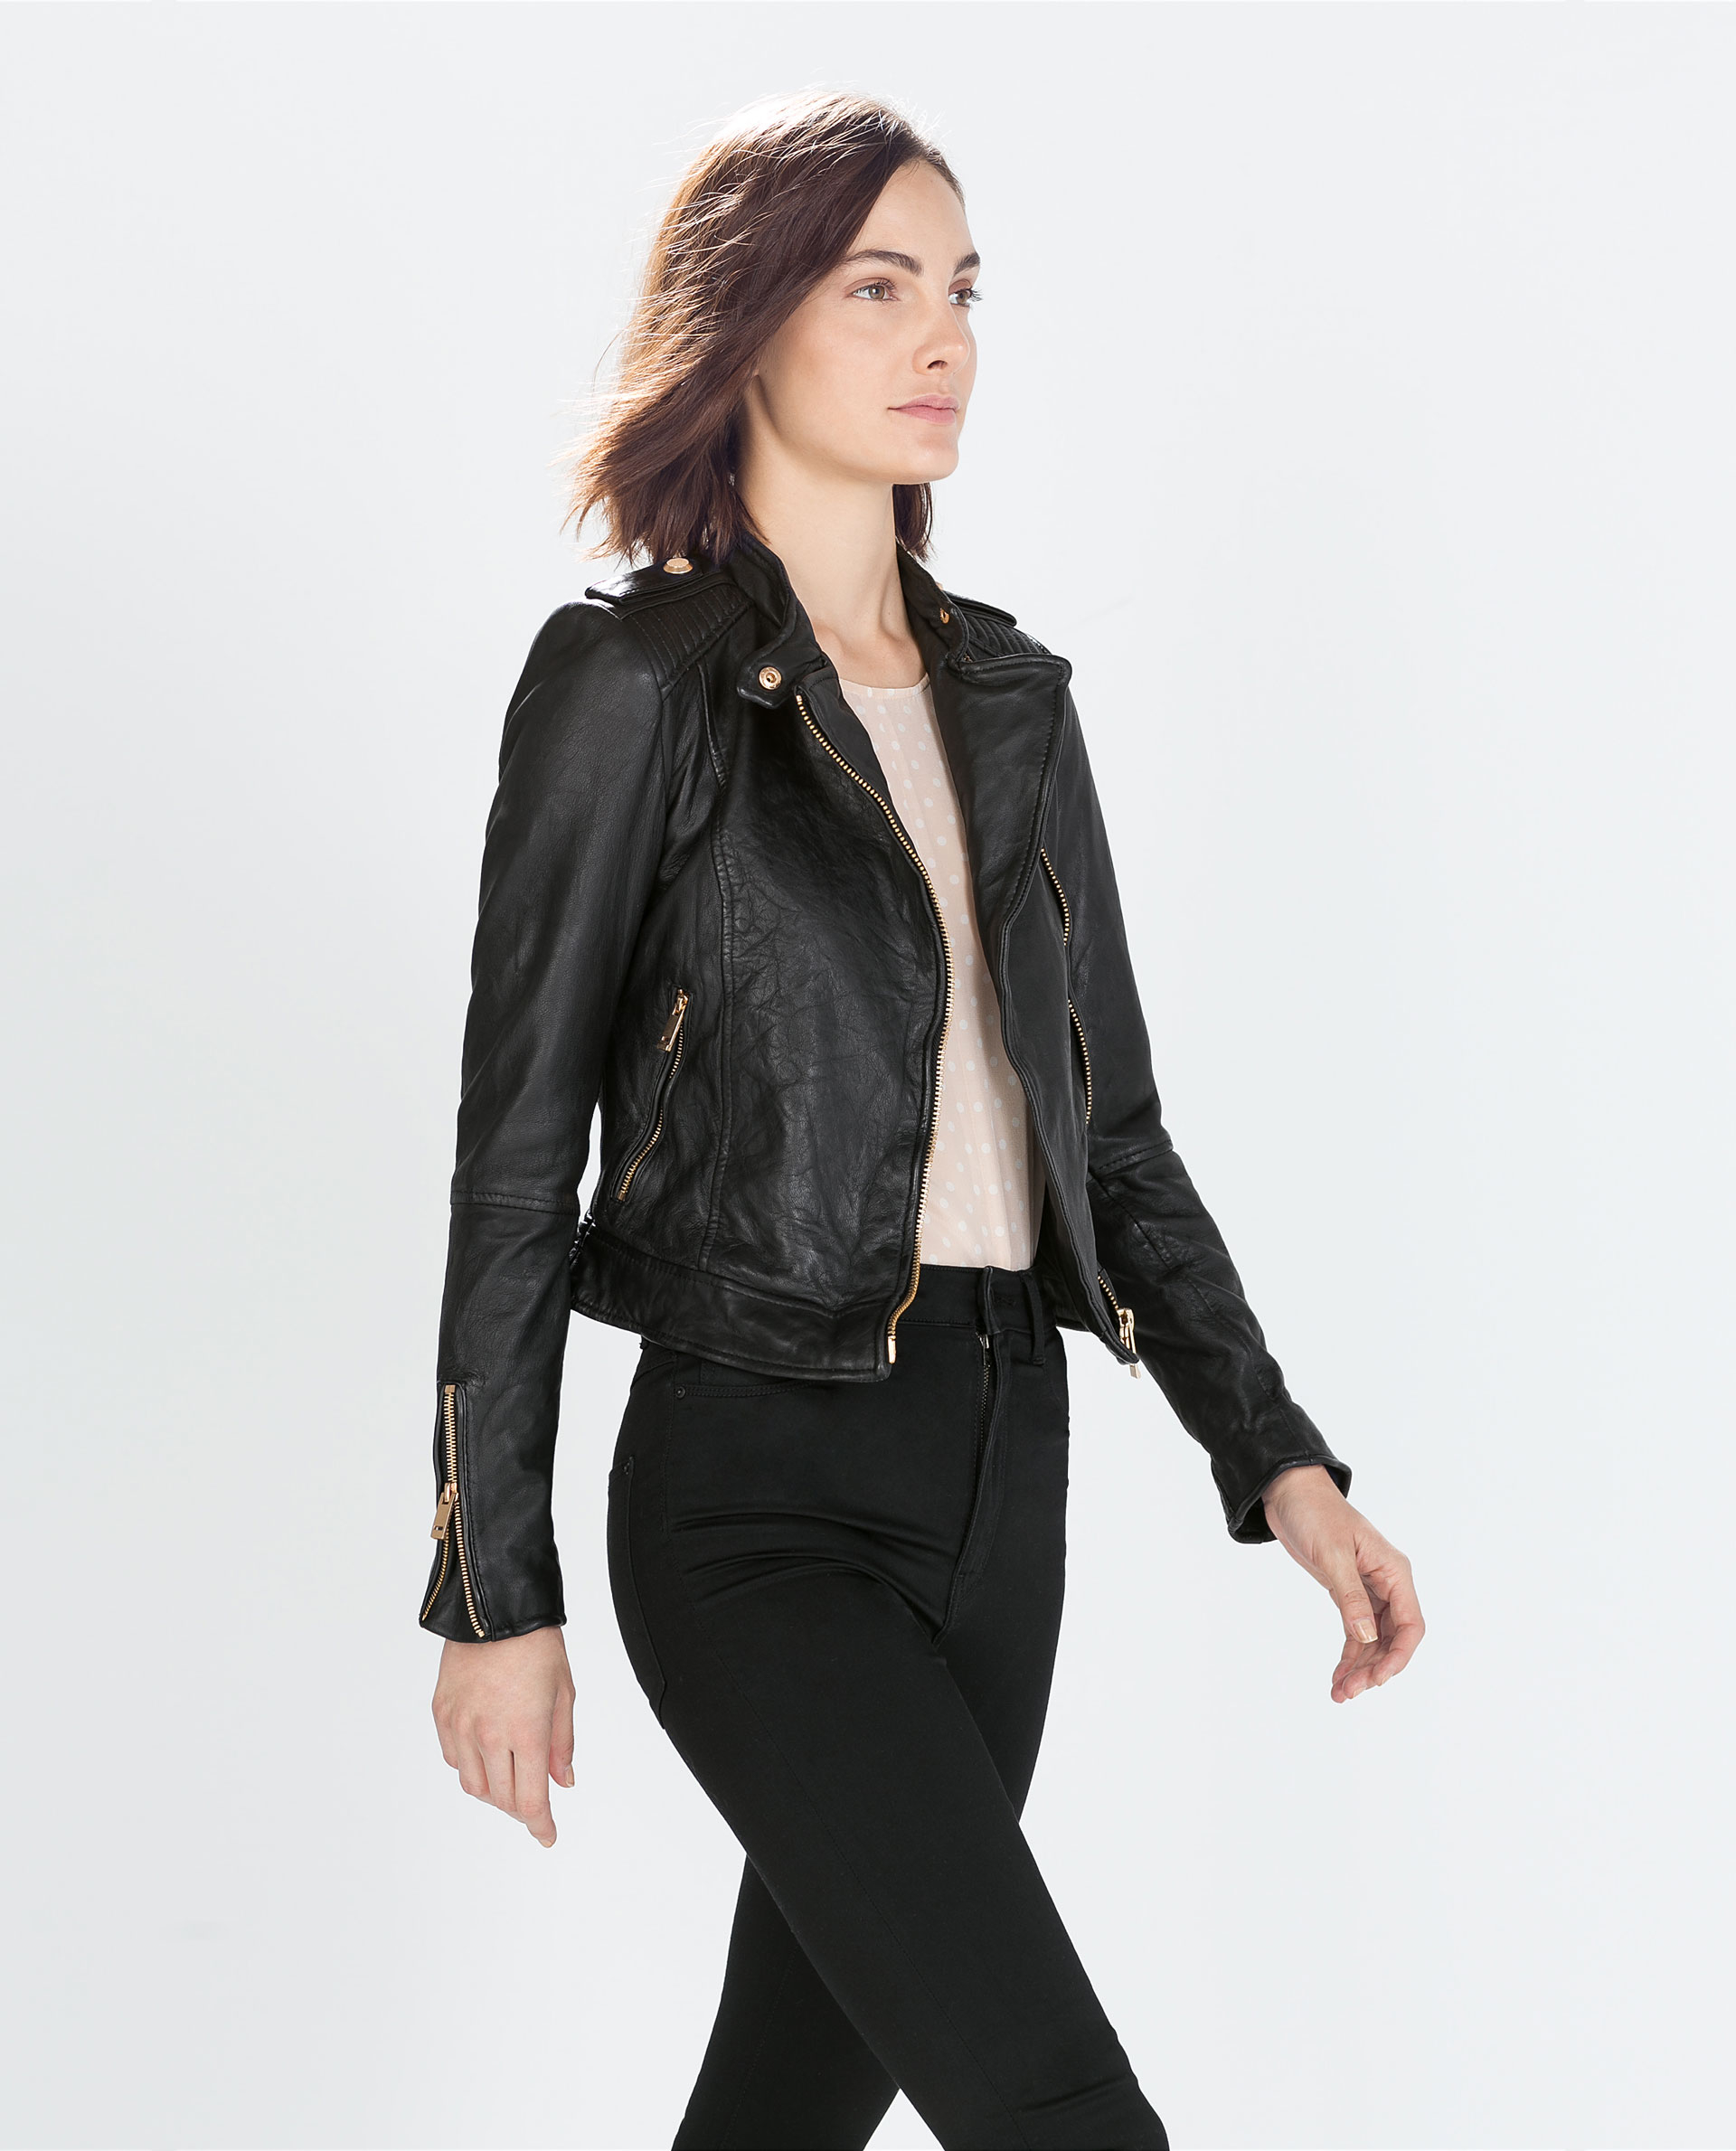 461df8ef Zara Faux Leather Jacket - vinted.com